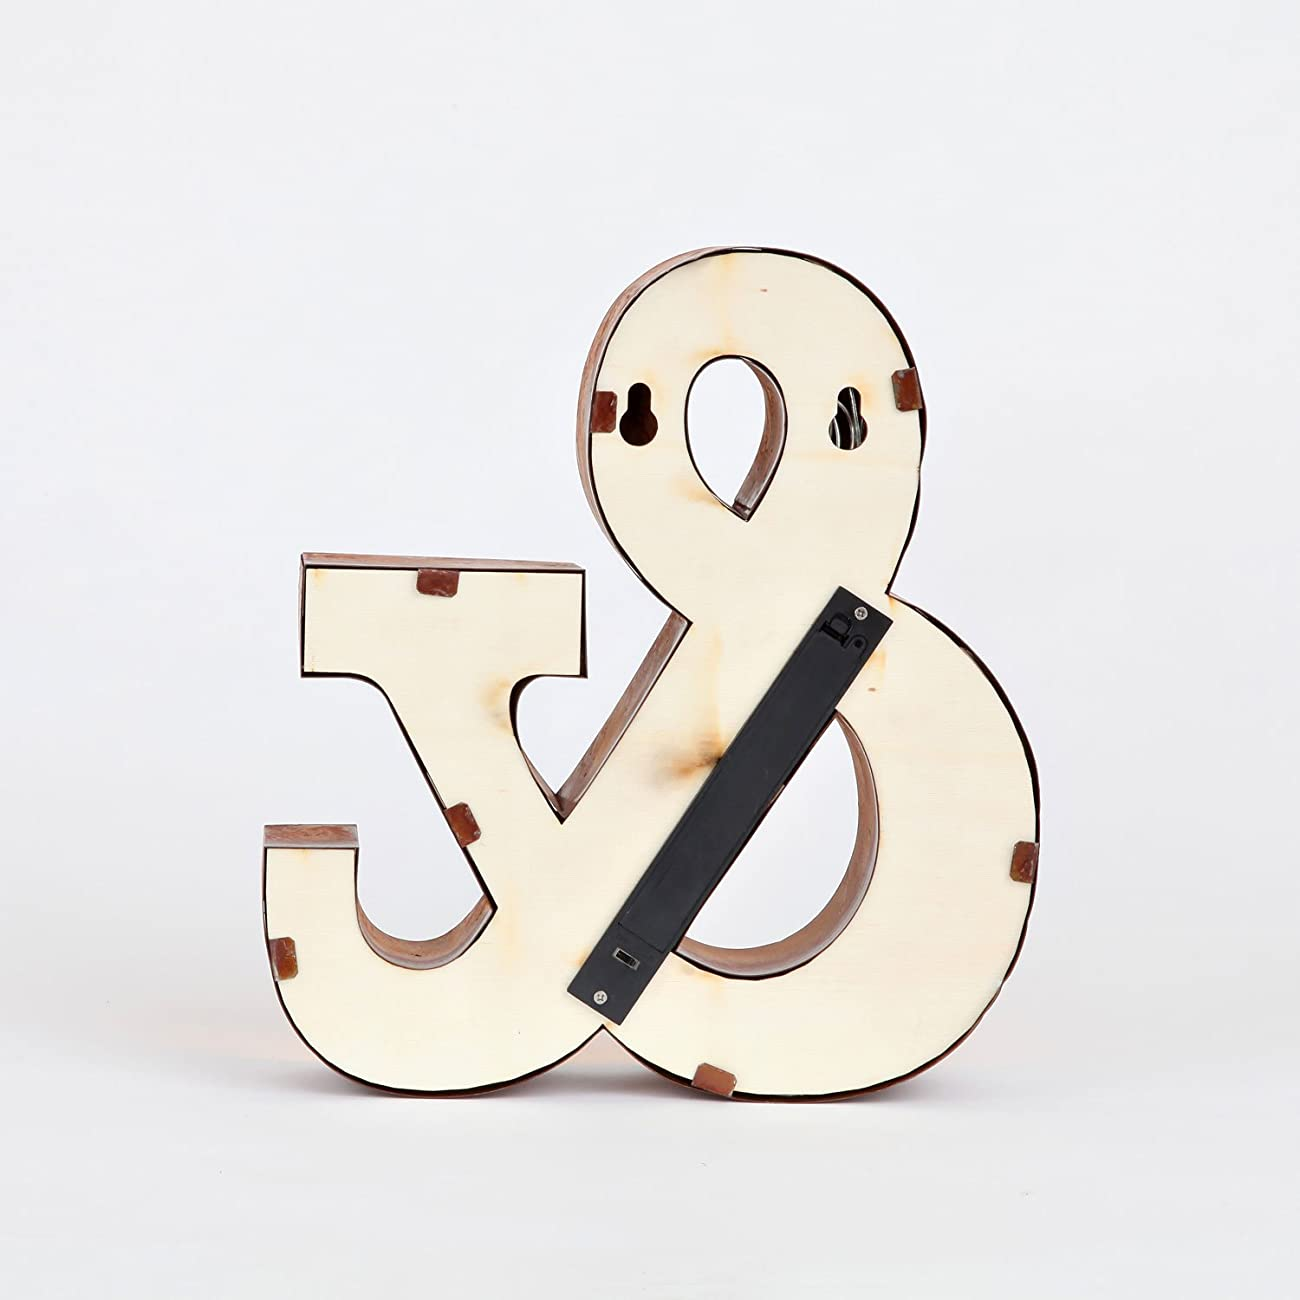 Vintage Lighted Ampersand Symbol Battery Marquee Light with 12 Warm White LEDs, Rustic Metal, Timer Option Available 3